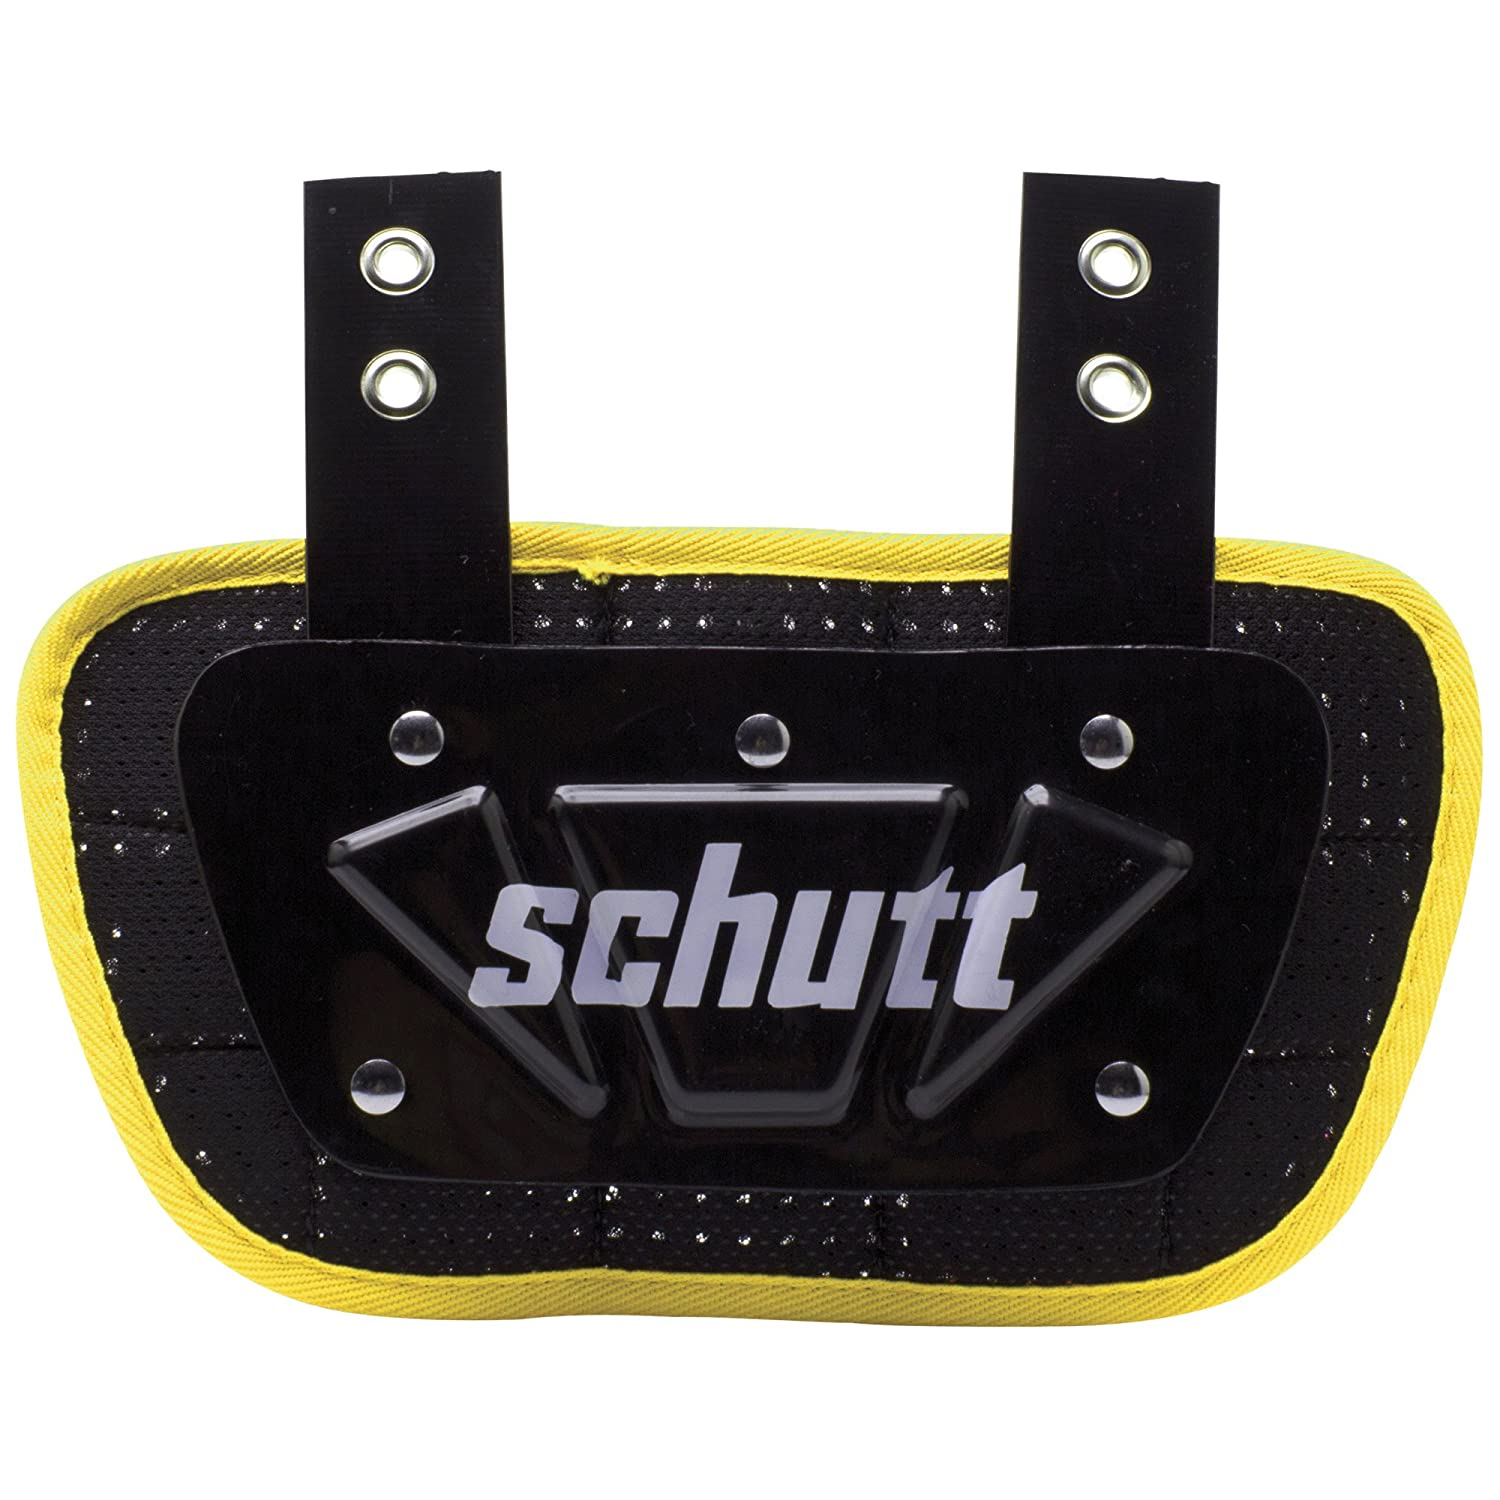 Schutt Sports Neon Football Back Plate